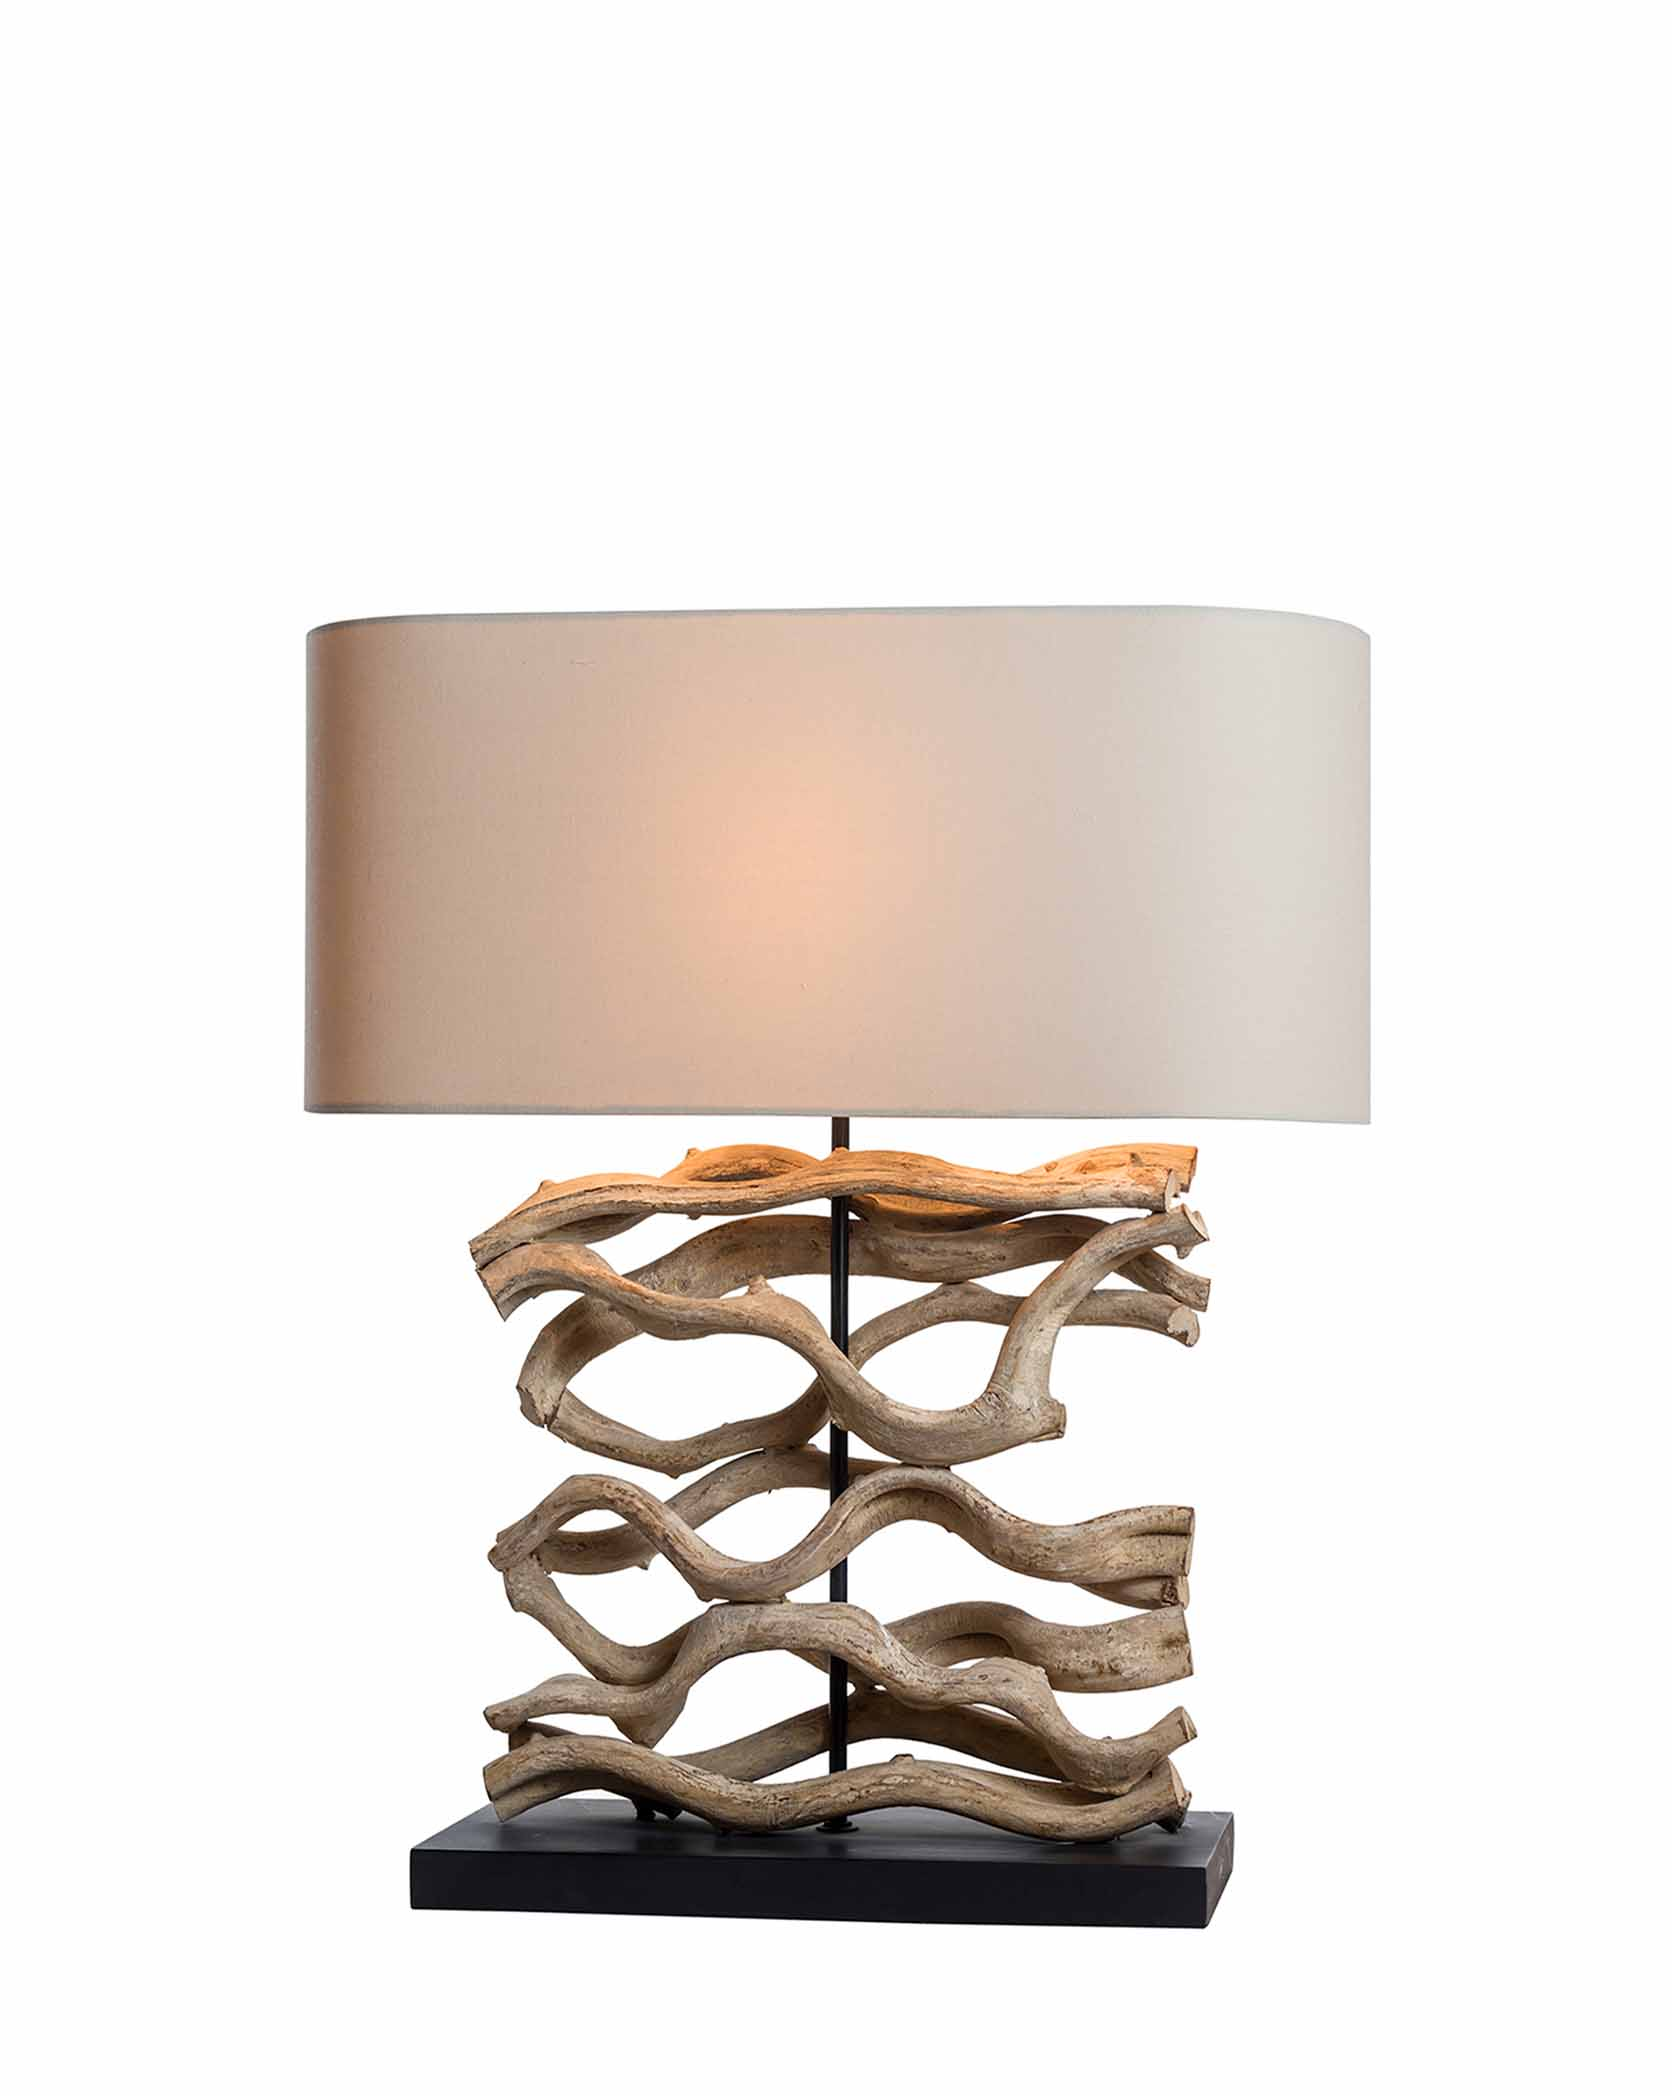 Le Sculpture Lamp (Medium) product photo #1